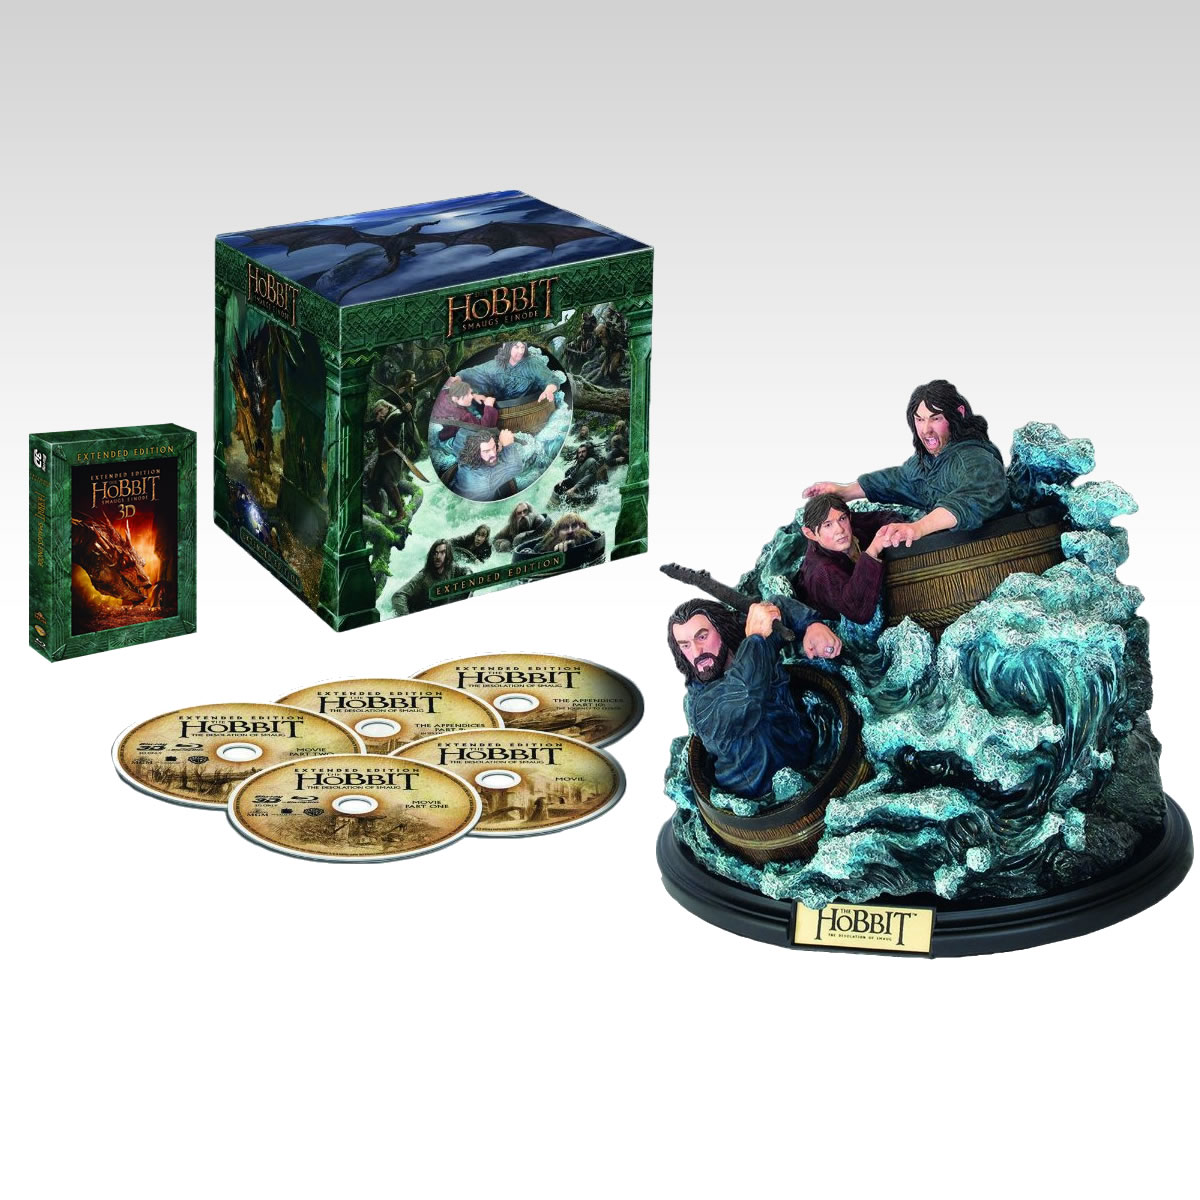 THE HOBBIT: THE DESOLATION OF SMAUG 3D Extended - ΧΟΜΠΙΤ: Η ΕΡΗΜΙΑ ΤΟΥ ΝΟΣΦΙΣΤΗ 3D Extended + BARREL RIDERS Limited Collector's Edition [Εισαγωγής ΜΕ ΕΛΛΗΝΙΚΟΥΣ ΥΠΟΤΙΤΛΟΥΣ] (2 BLU-RAY 3D + 3 BLU-RAY)